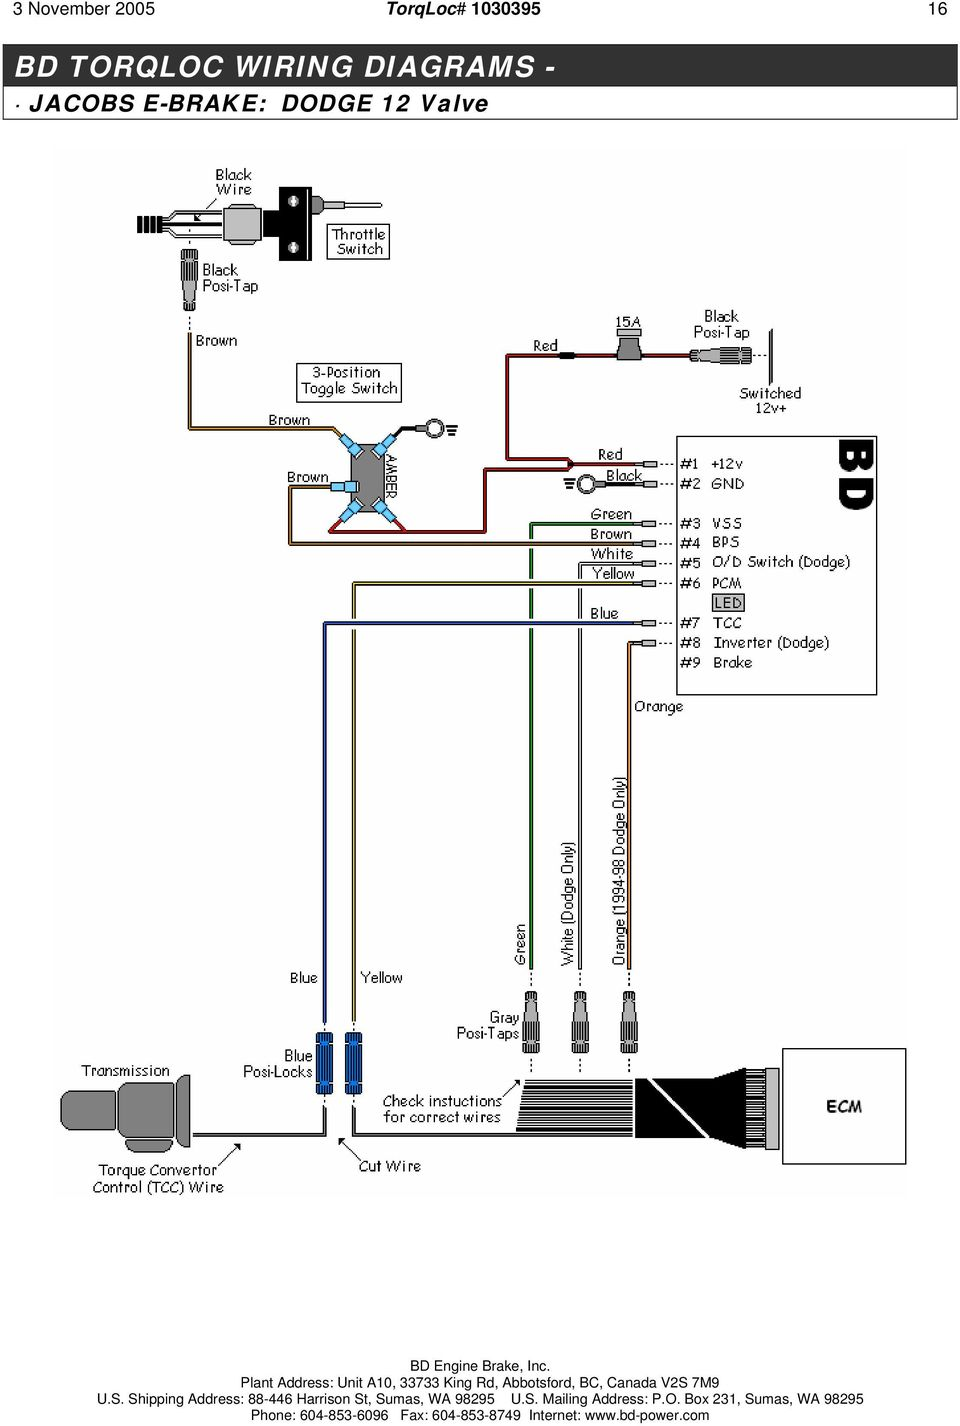 hight resolution of torqloc wiring diagrams